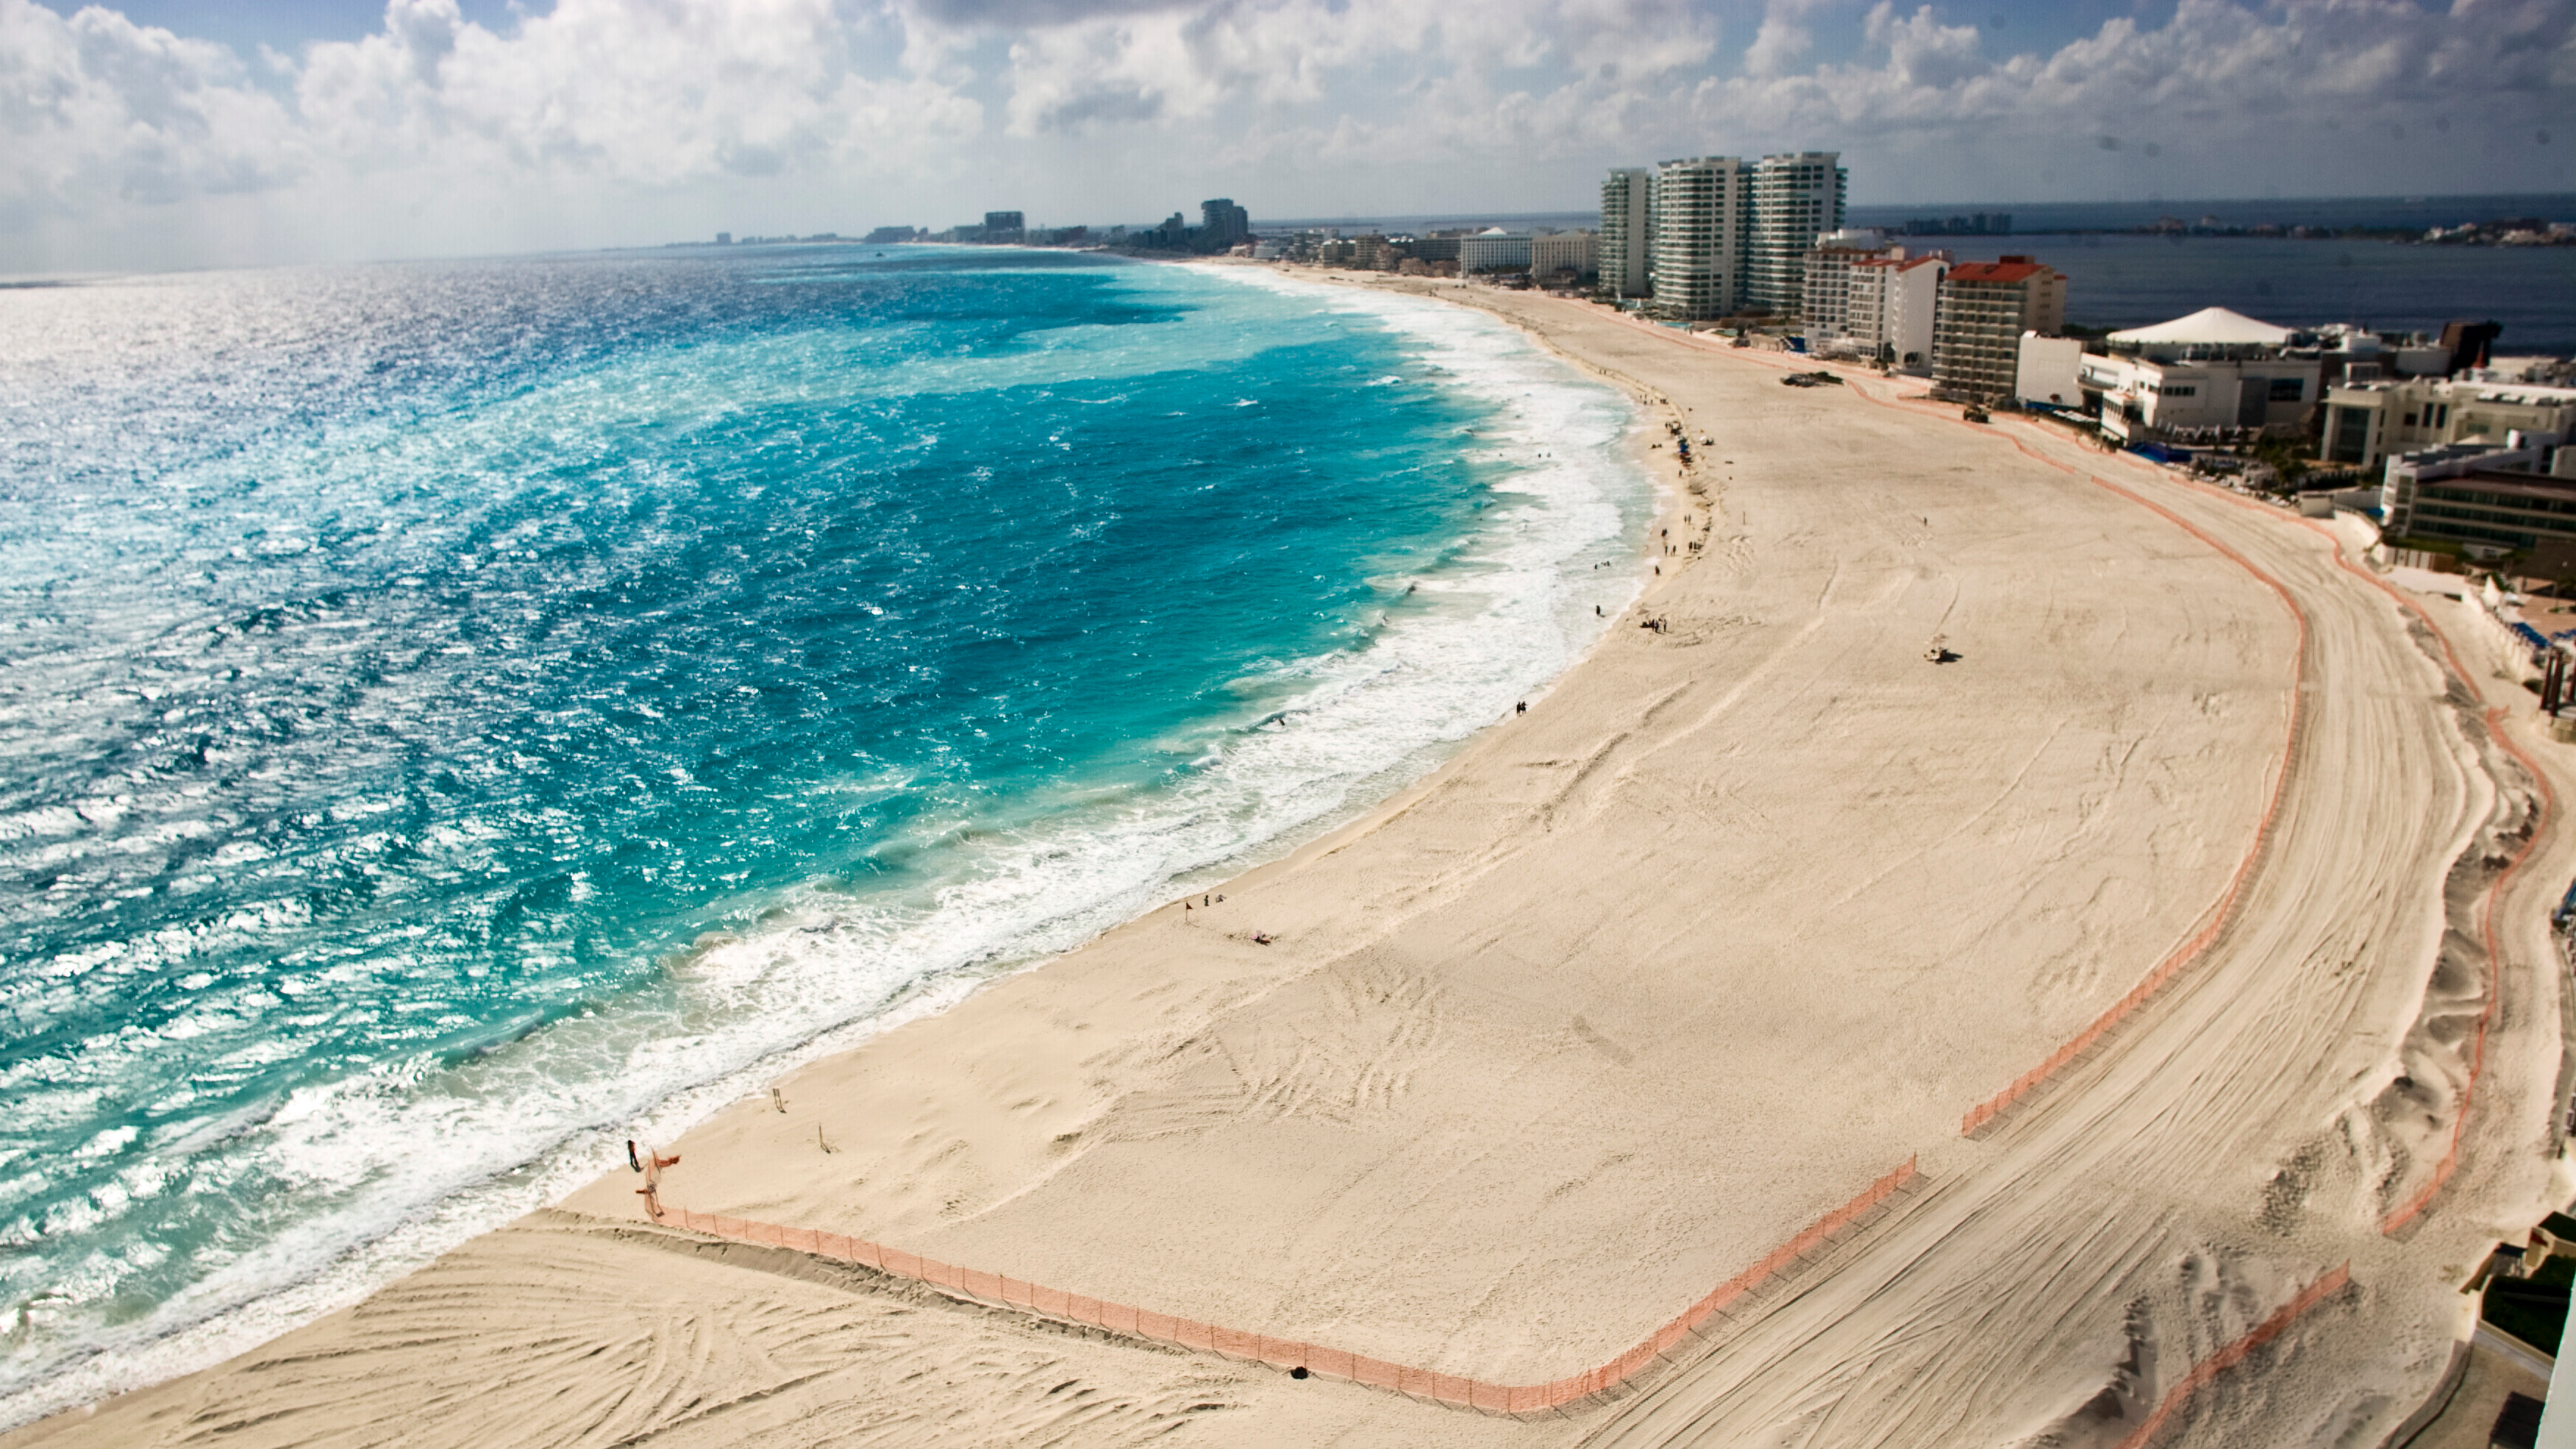 Holiday Paradise Cancún Is Fast Becoming One Of The Deadliest Cities In The World